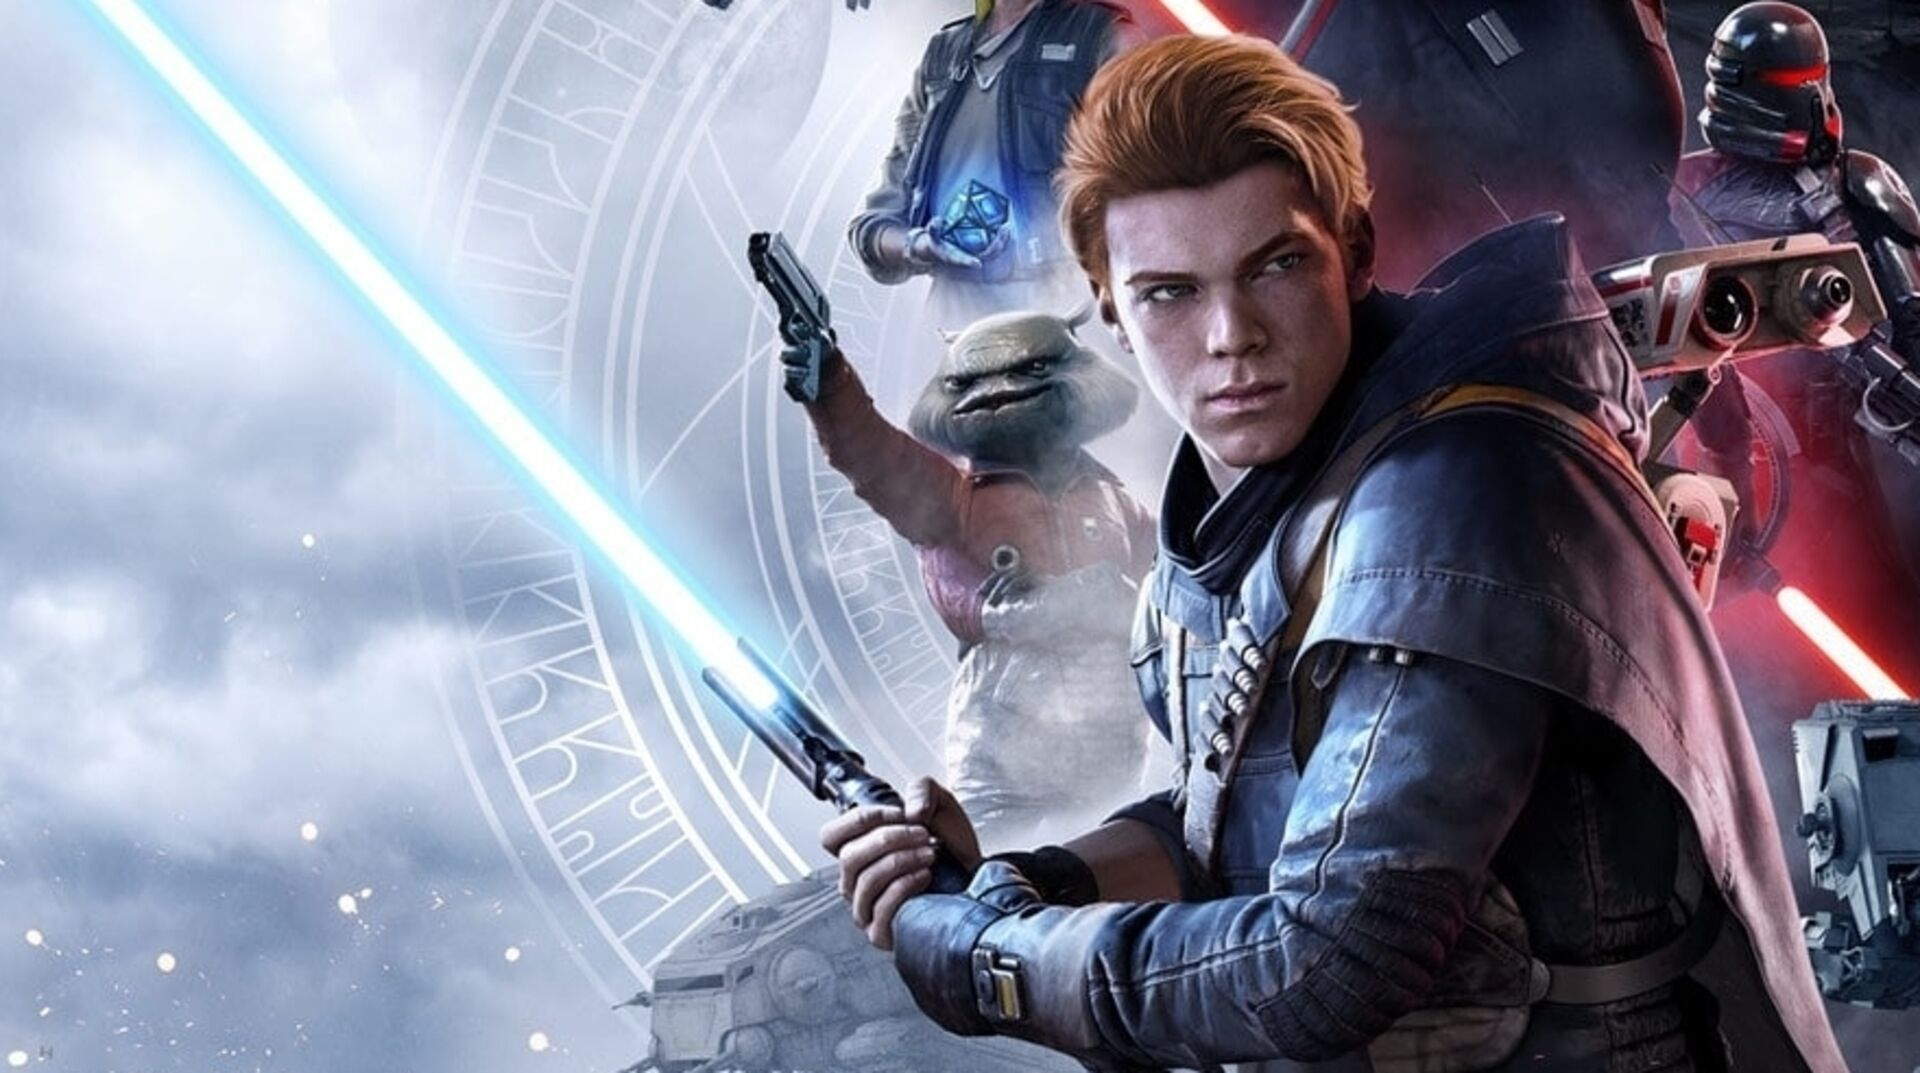 Star Wars Jedi: Fallen Order beat EA expectations by selling 8m copies - Eurogamer.net